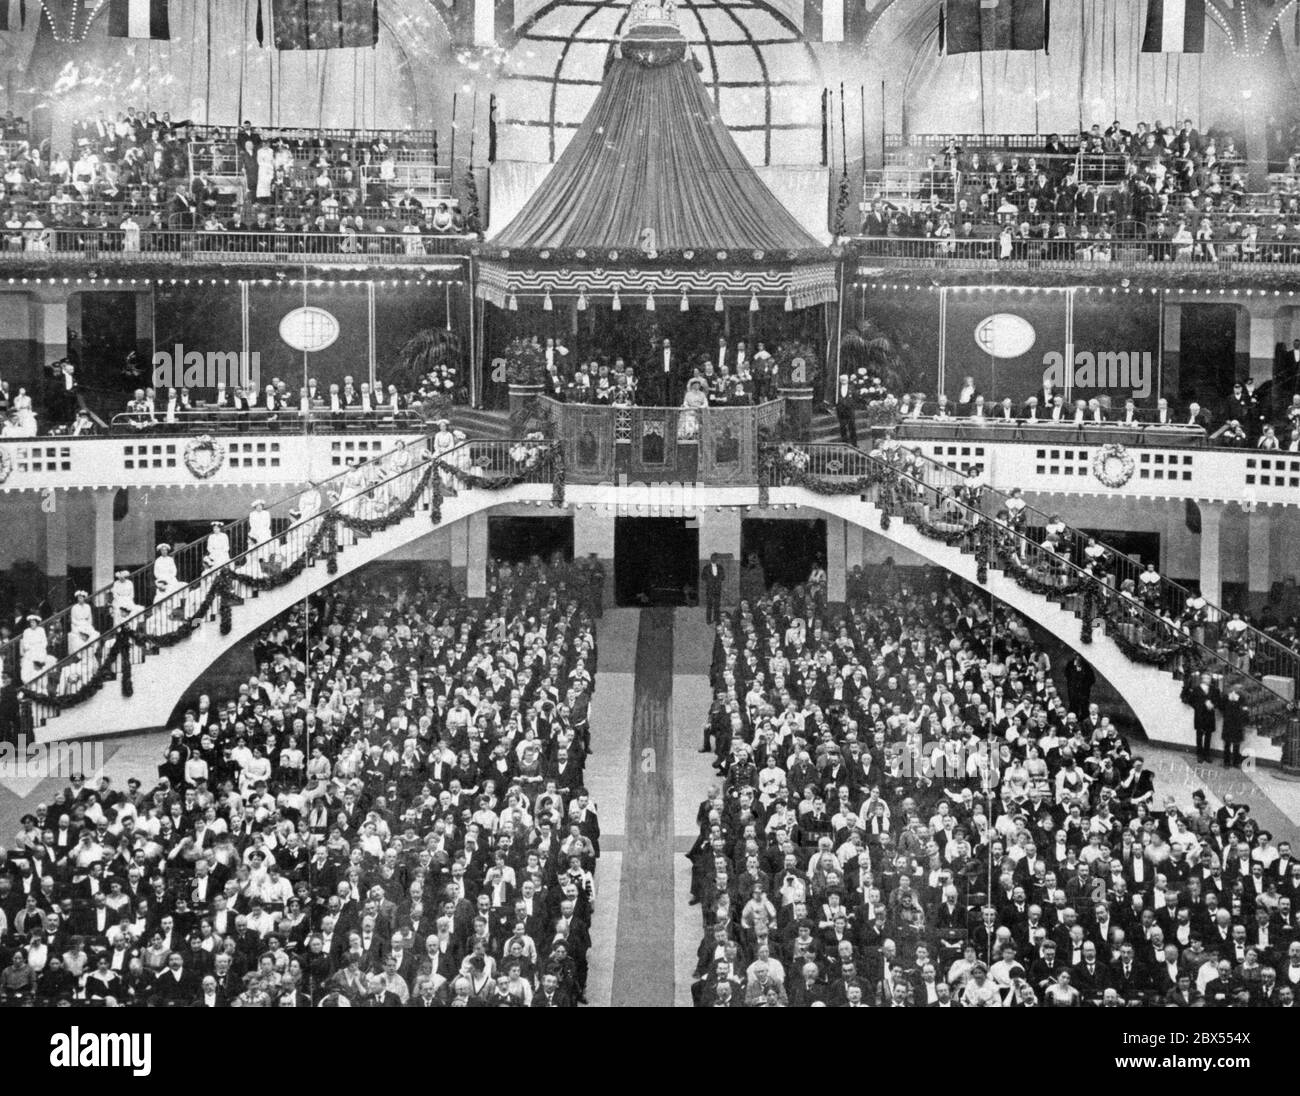 At the Kaiserpreis Wettsingen (Singing contest for the Emperor's Prize) in Frankfurt am Main. View of the Emperor's Lodge in the Festhalle. Stock Photo